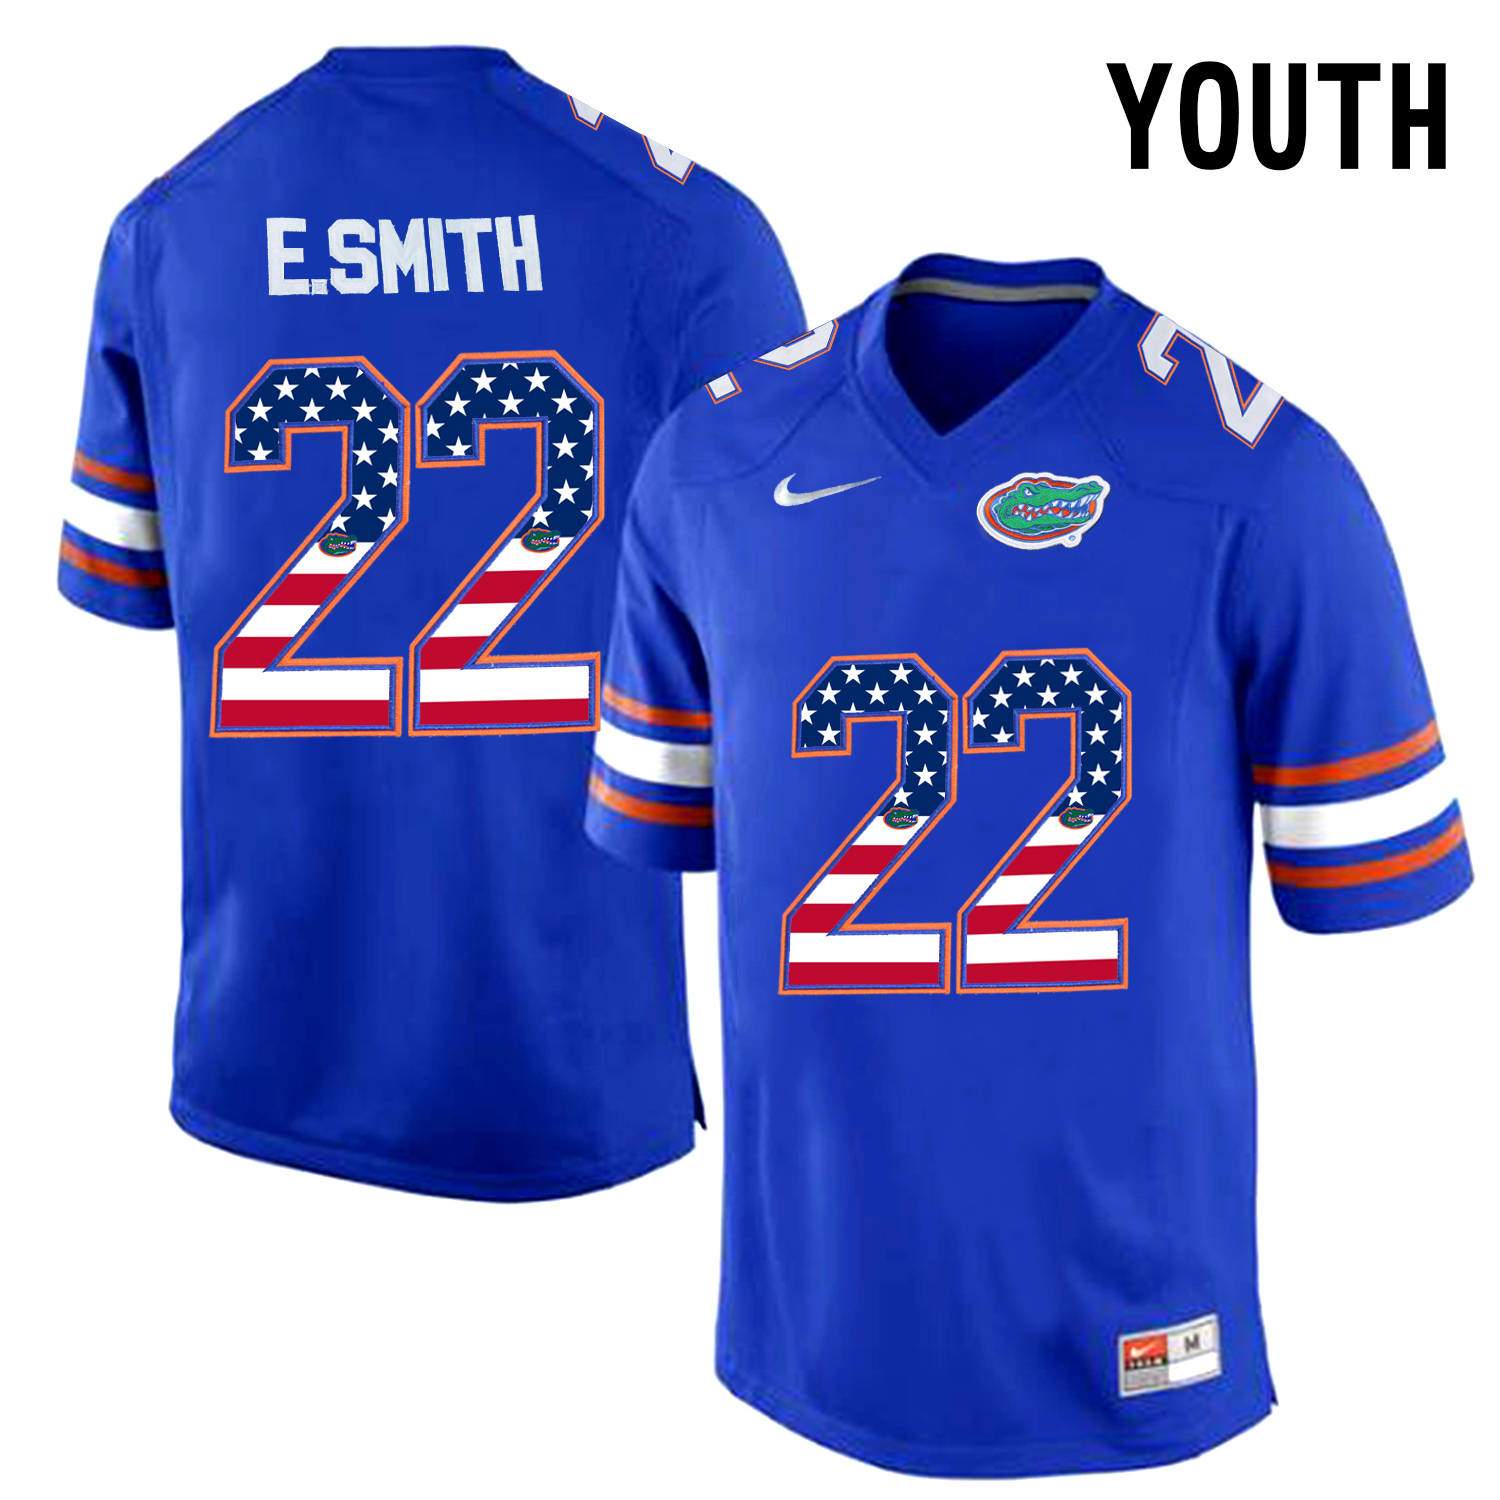 2016 US Flag Fashion Youth Florida Gators E.Smith 22 College Football Jersey Royal Blue